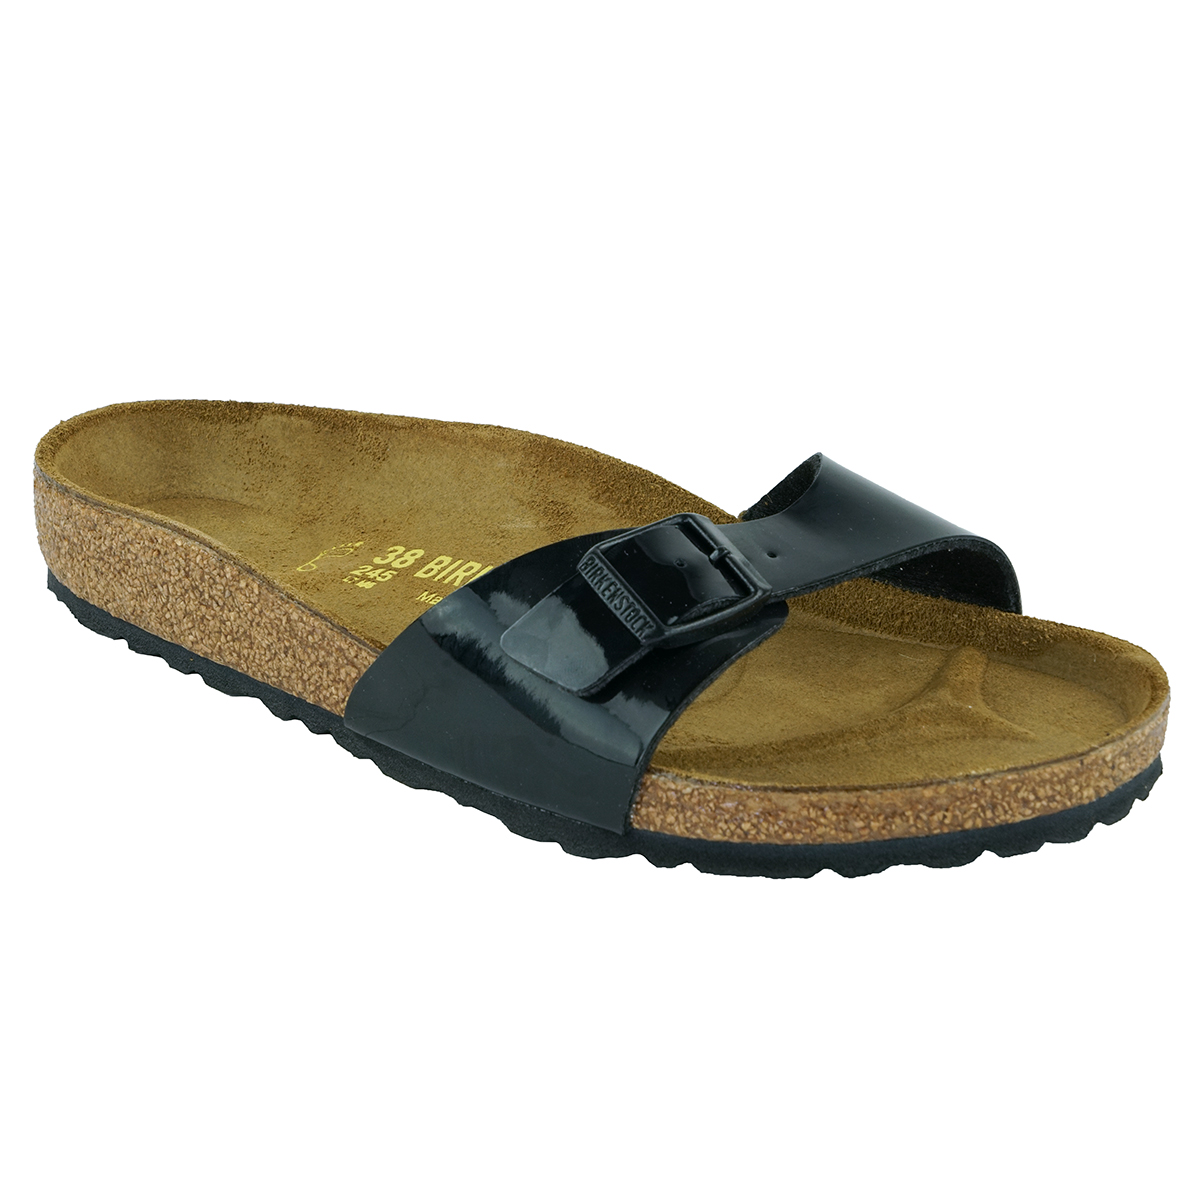 Details about Birkenstock Madrid Birko Flor Sandals Black Patent 37